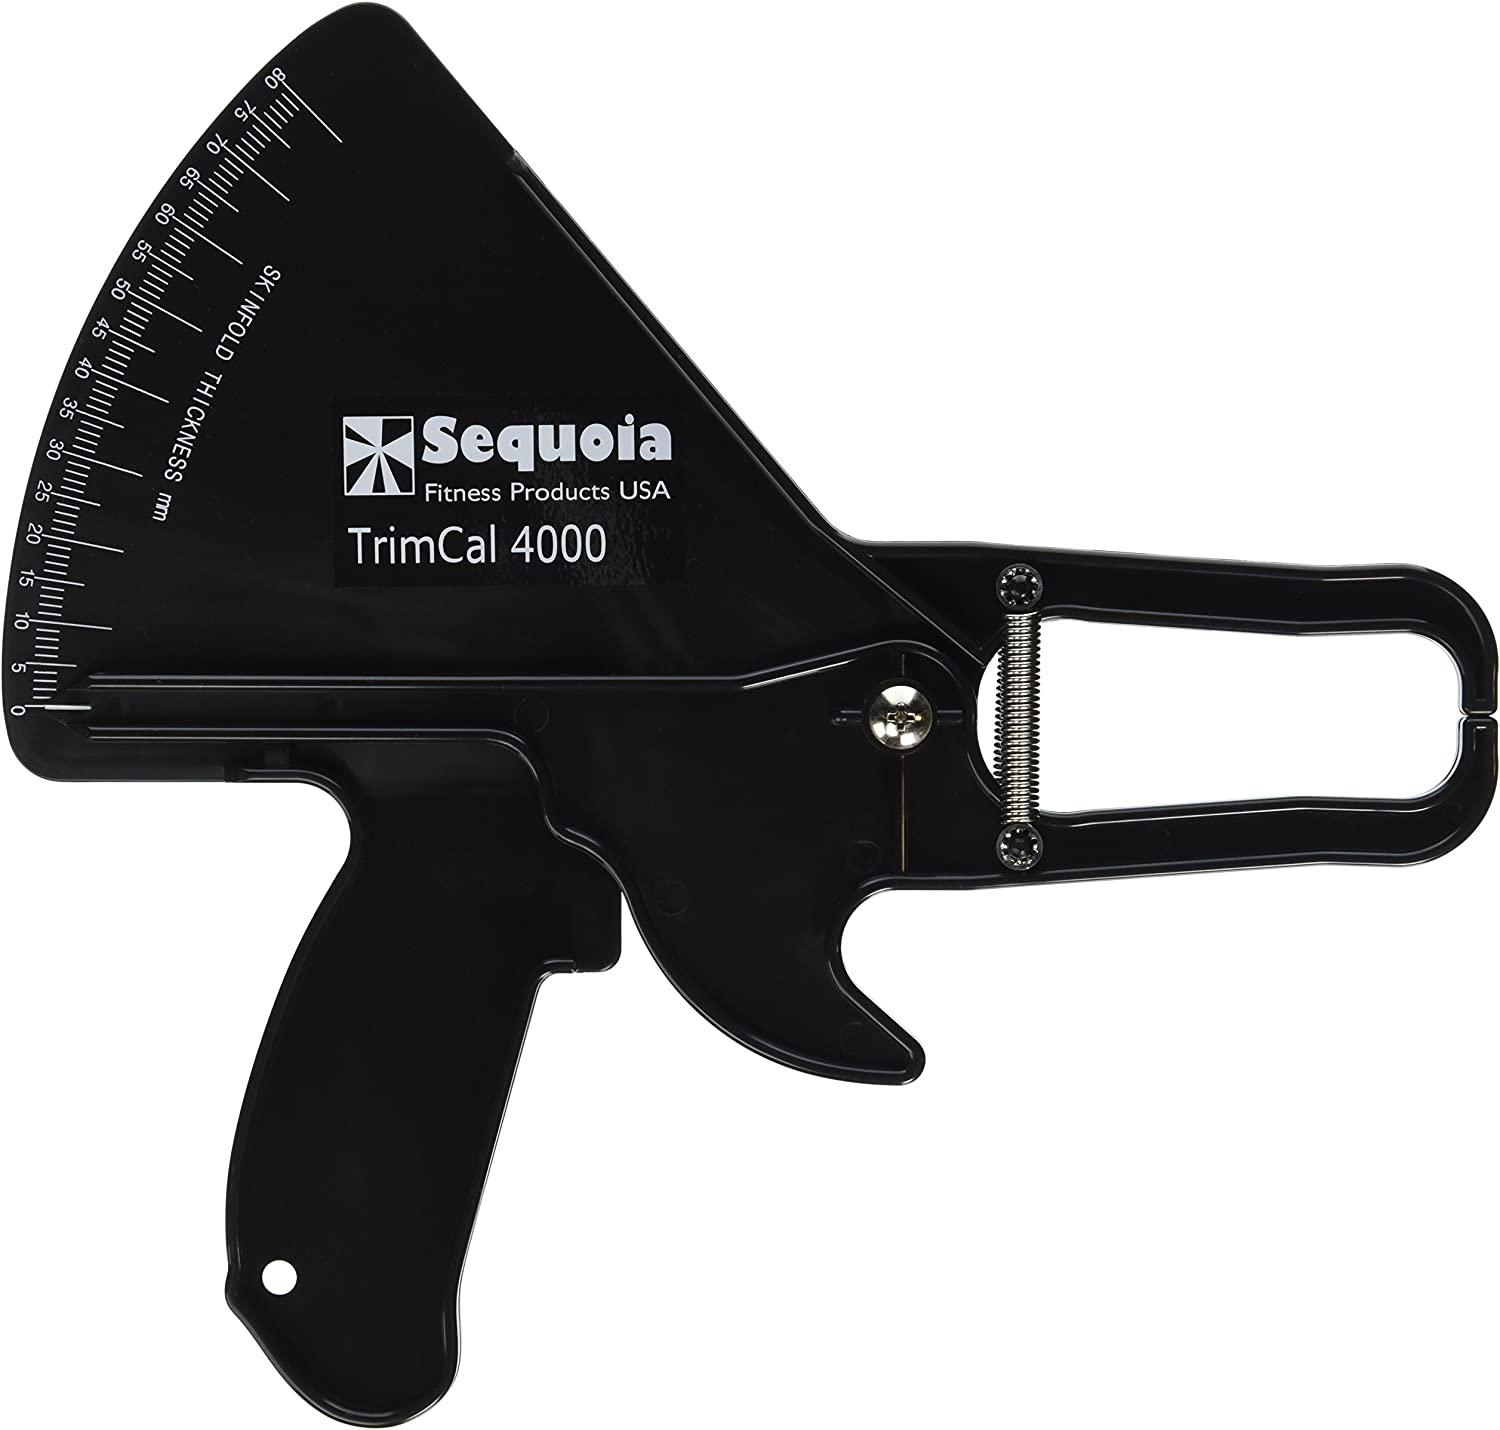 Sequoia Fitness TrimCal 4000 Body Fat Caliper (Black) [Health and Beauty]: Health & Personal Care